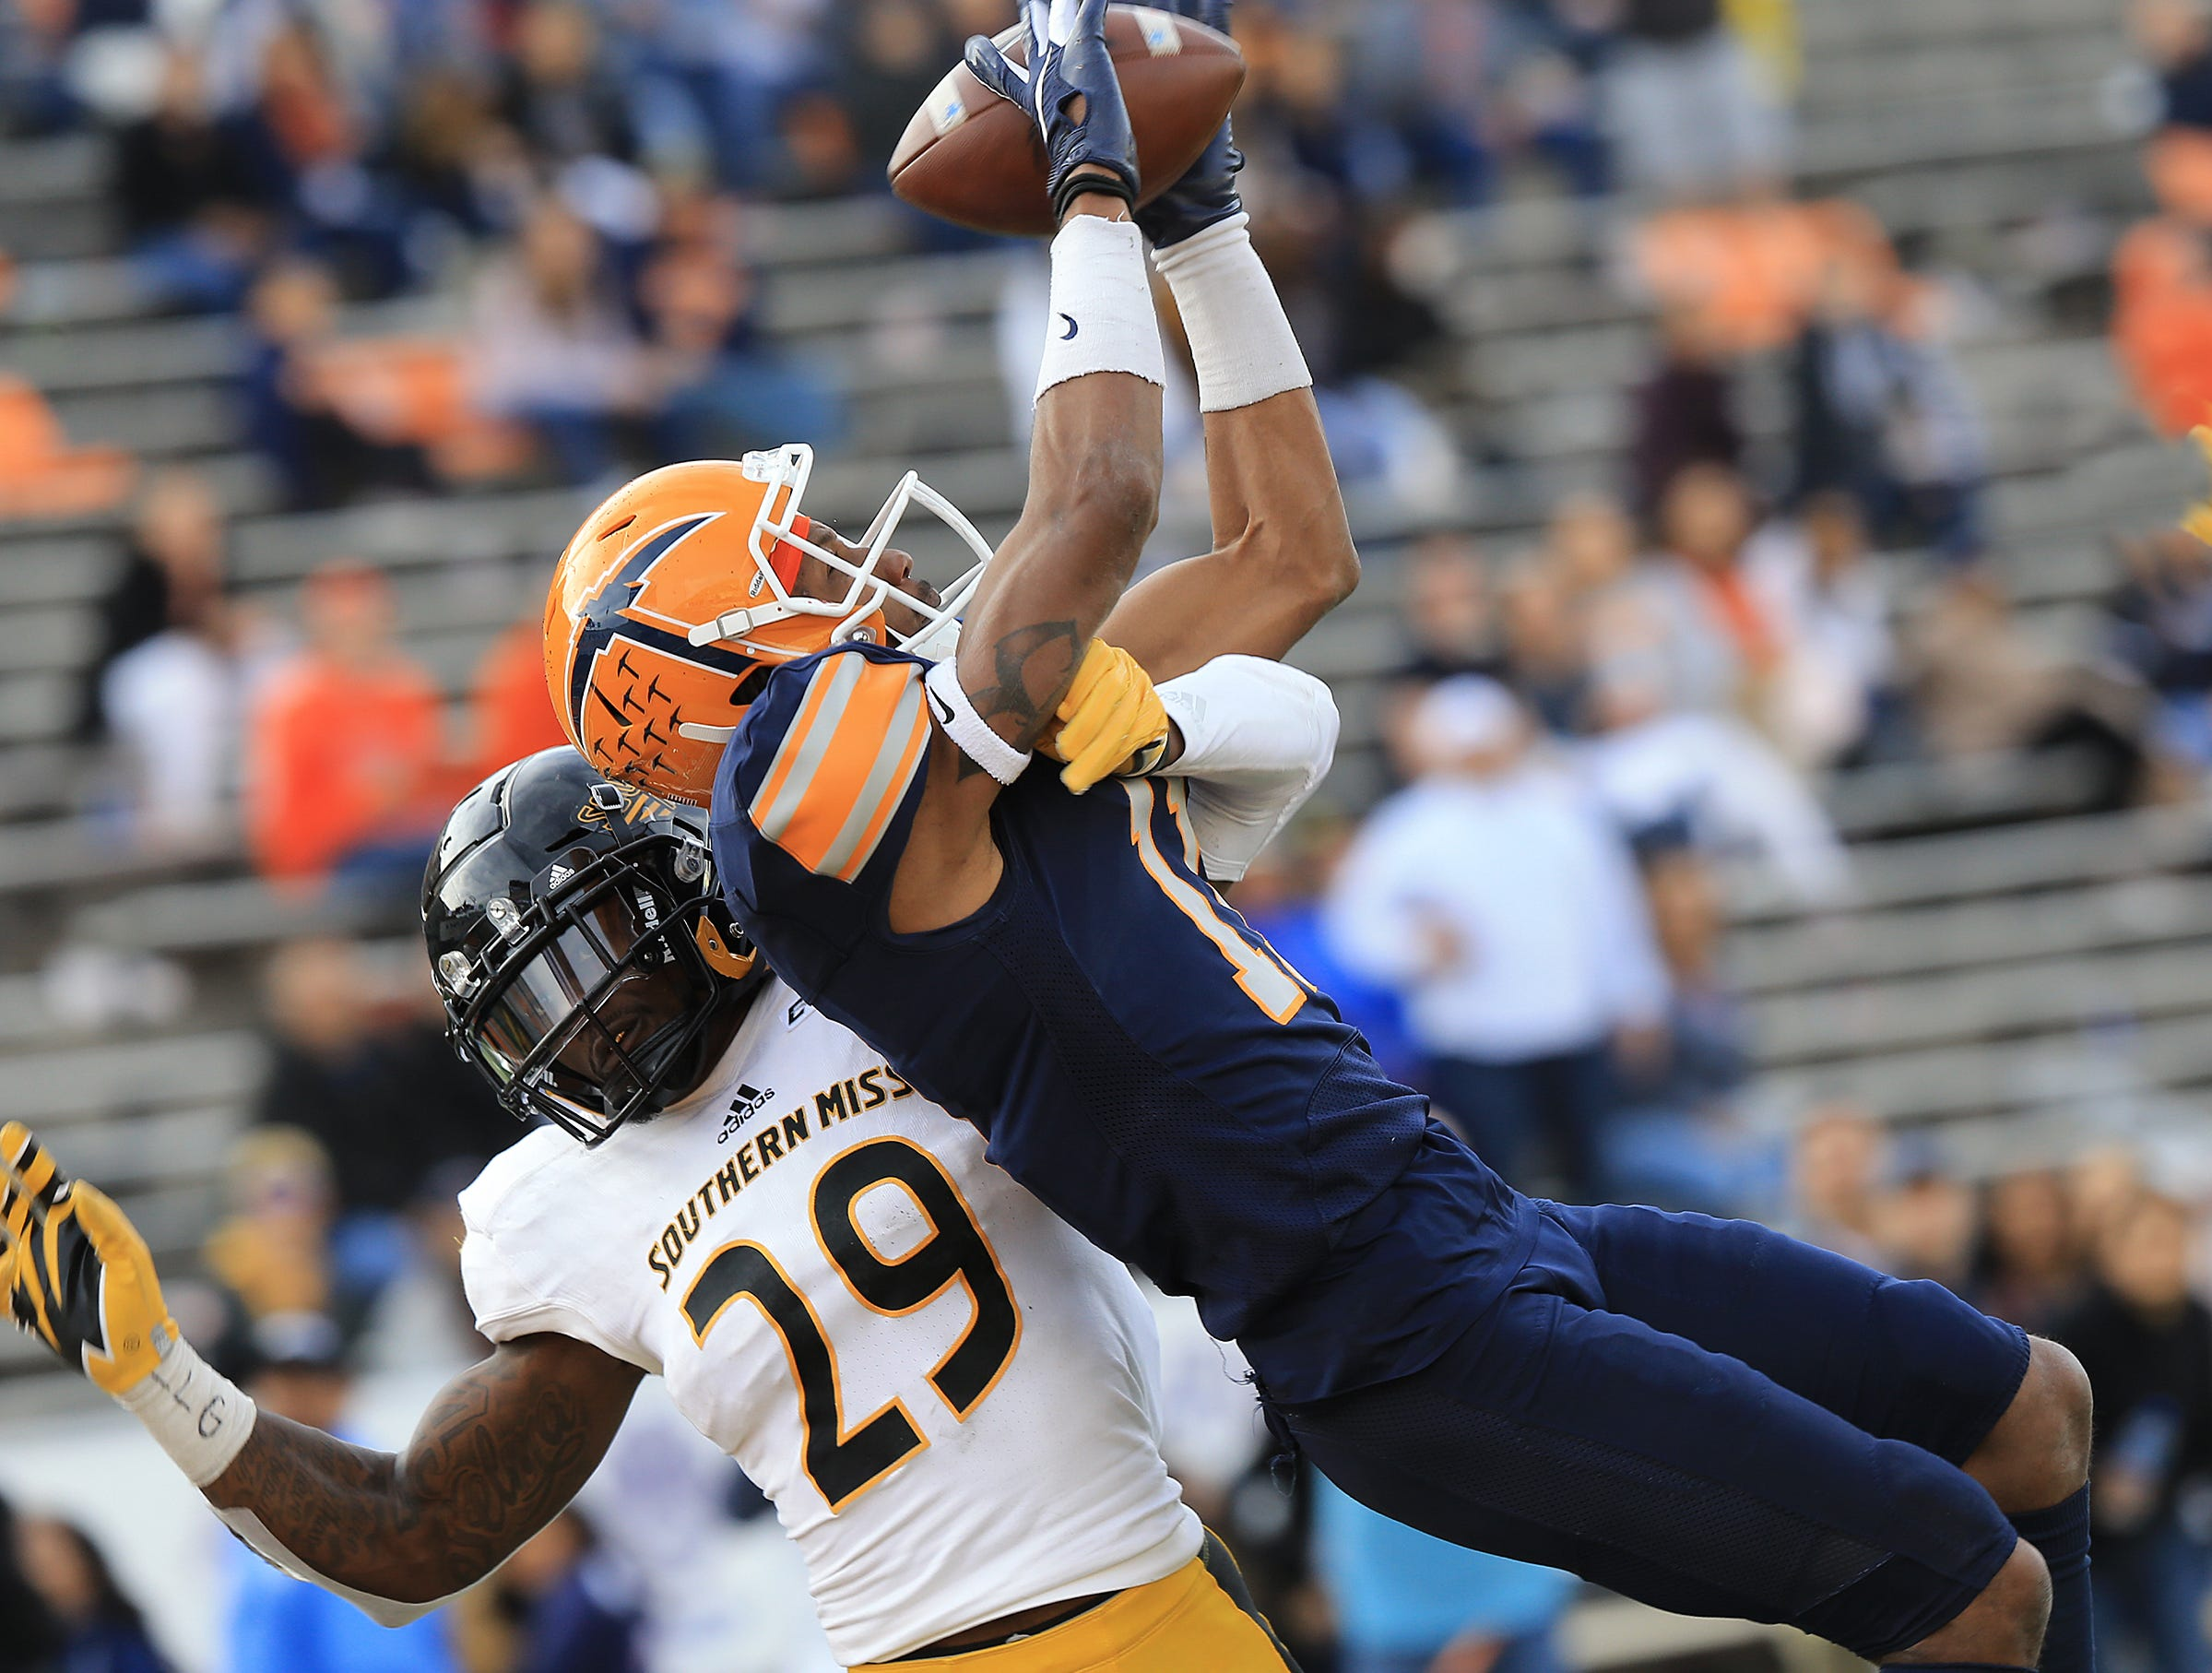 UTEP ended its season with a 39-7 loss to Southern Miss at Sun Bowl Stadium. UTEP seniors were joined by their families on the field prior to the game and were treated to a senior video following the game.